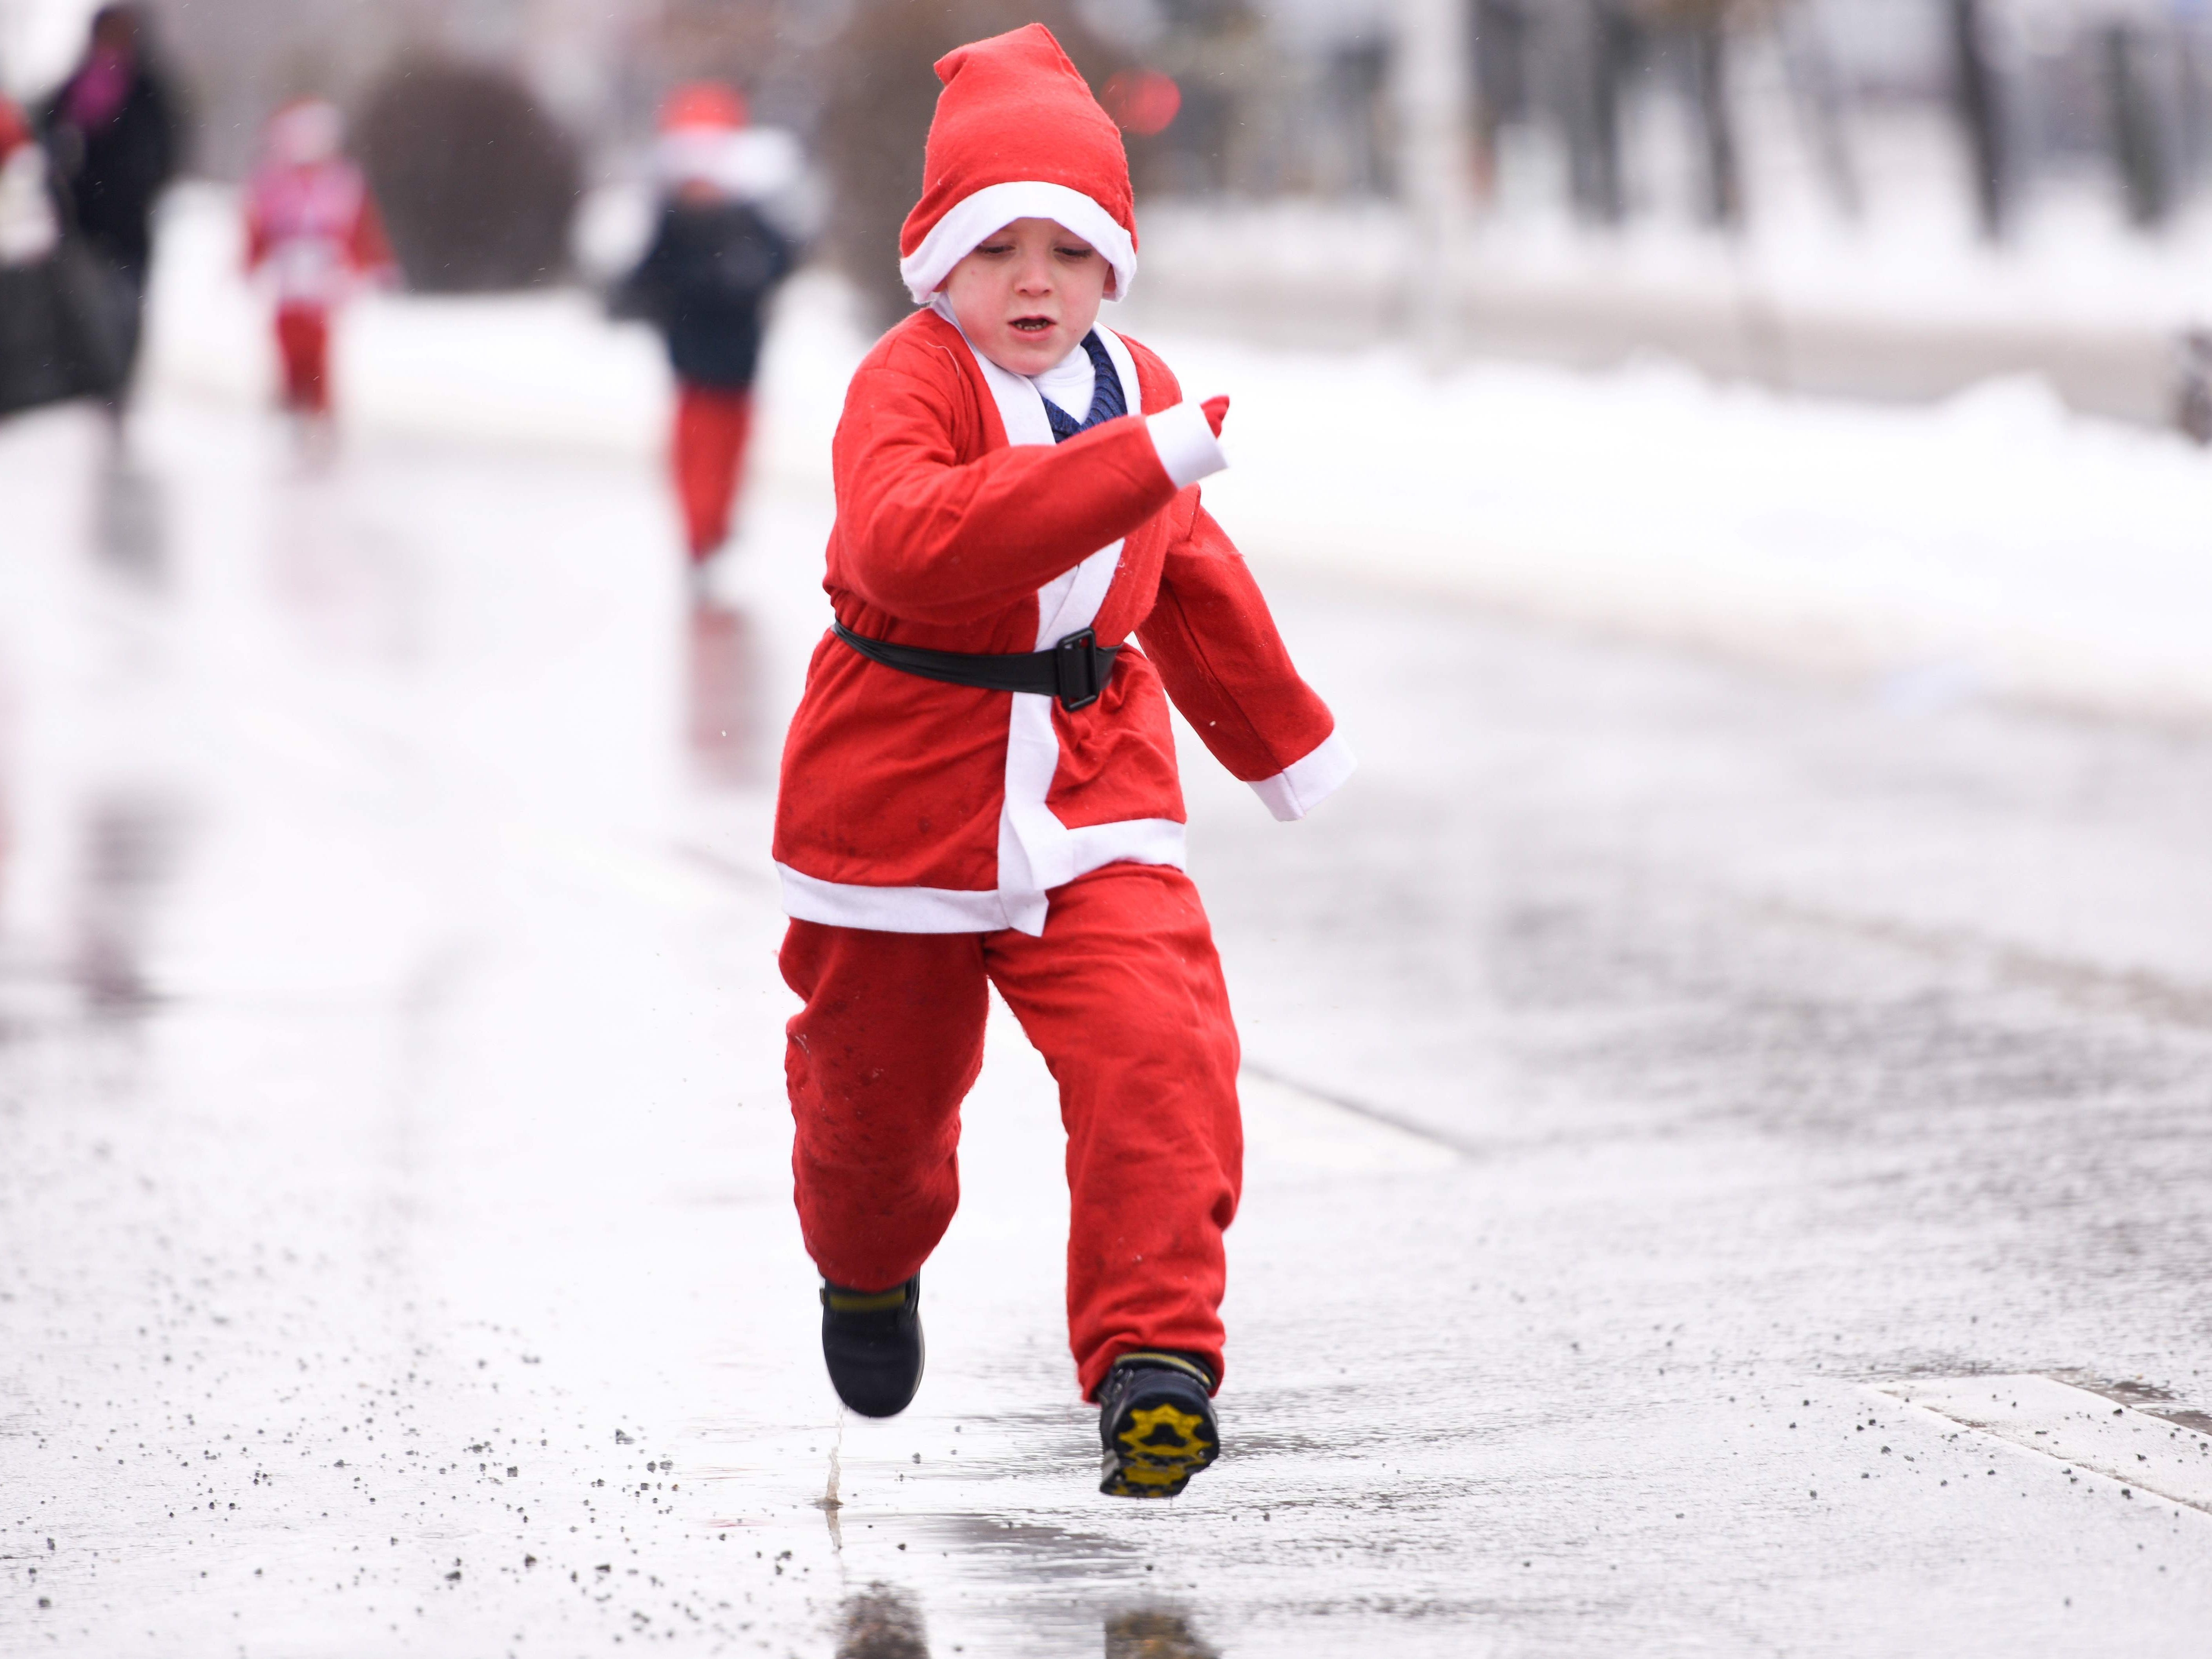 A child dressed as Santa Claus takes part in a charity race in Pristina, Kosovo on Dec. 16, 2018, to raise funds for families in need in Kosovo.